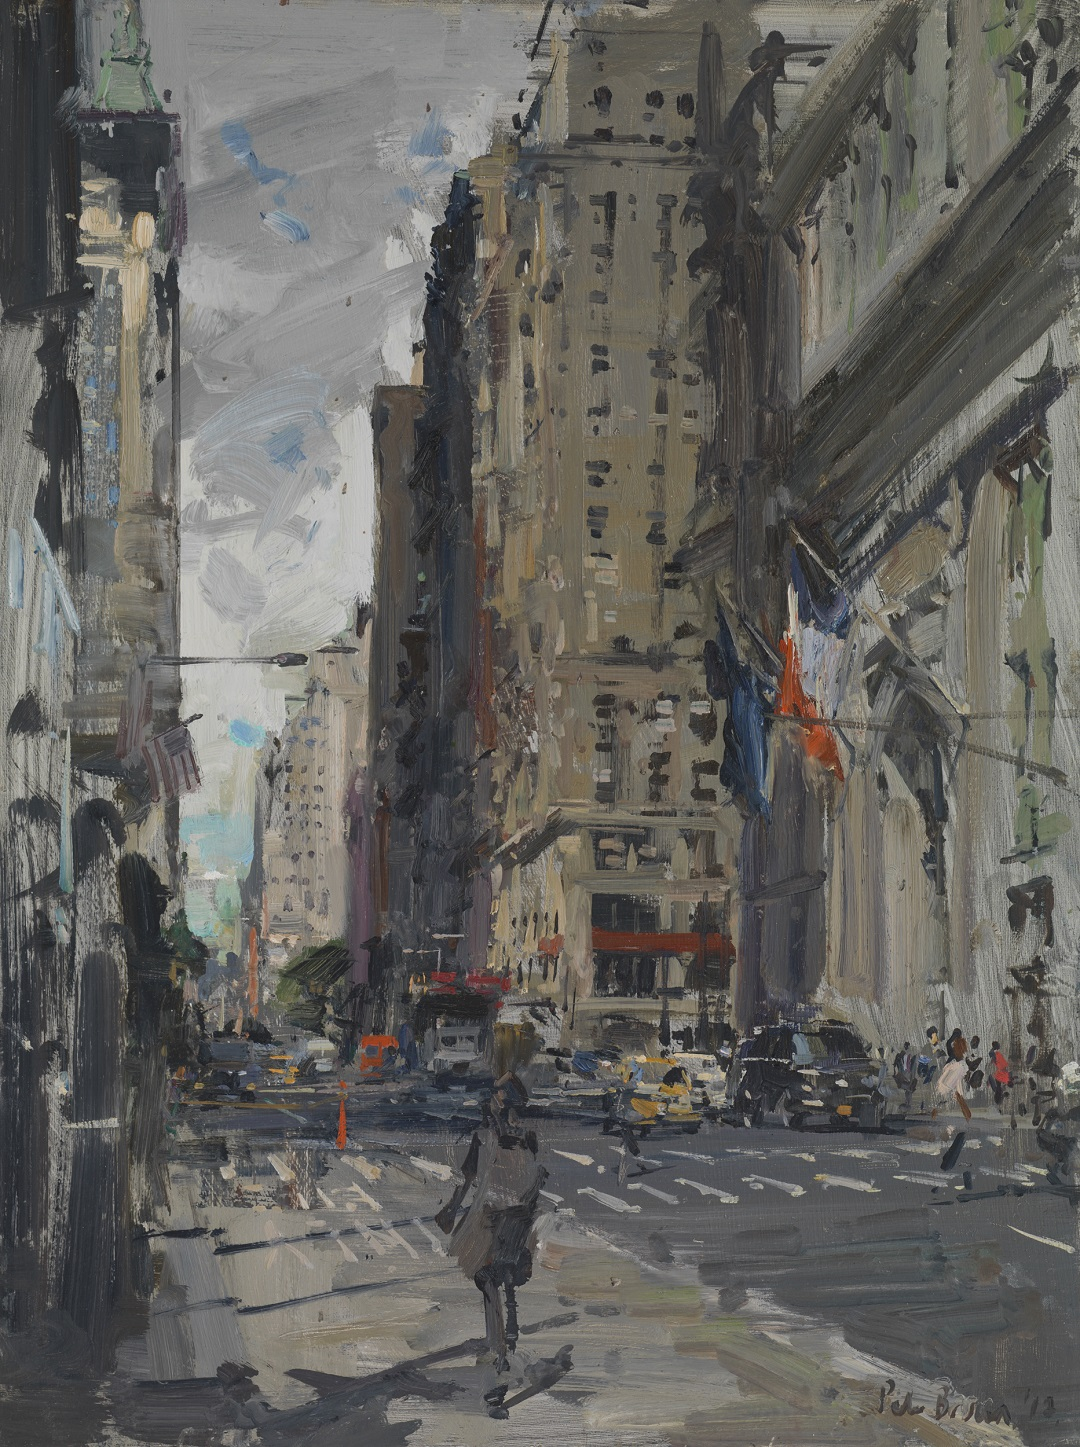 'Downtown Broadway, New York' Peter Brown Oil on board, 16x12, 2017